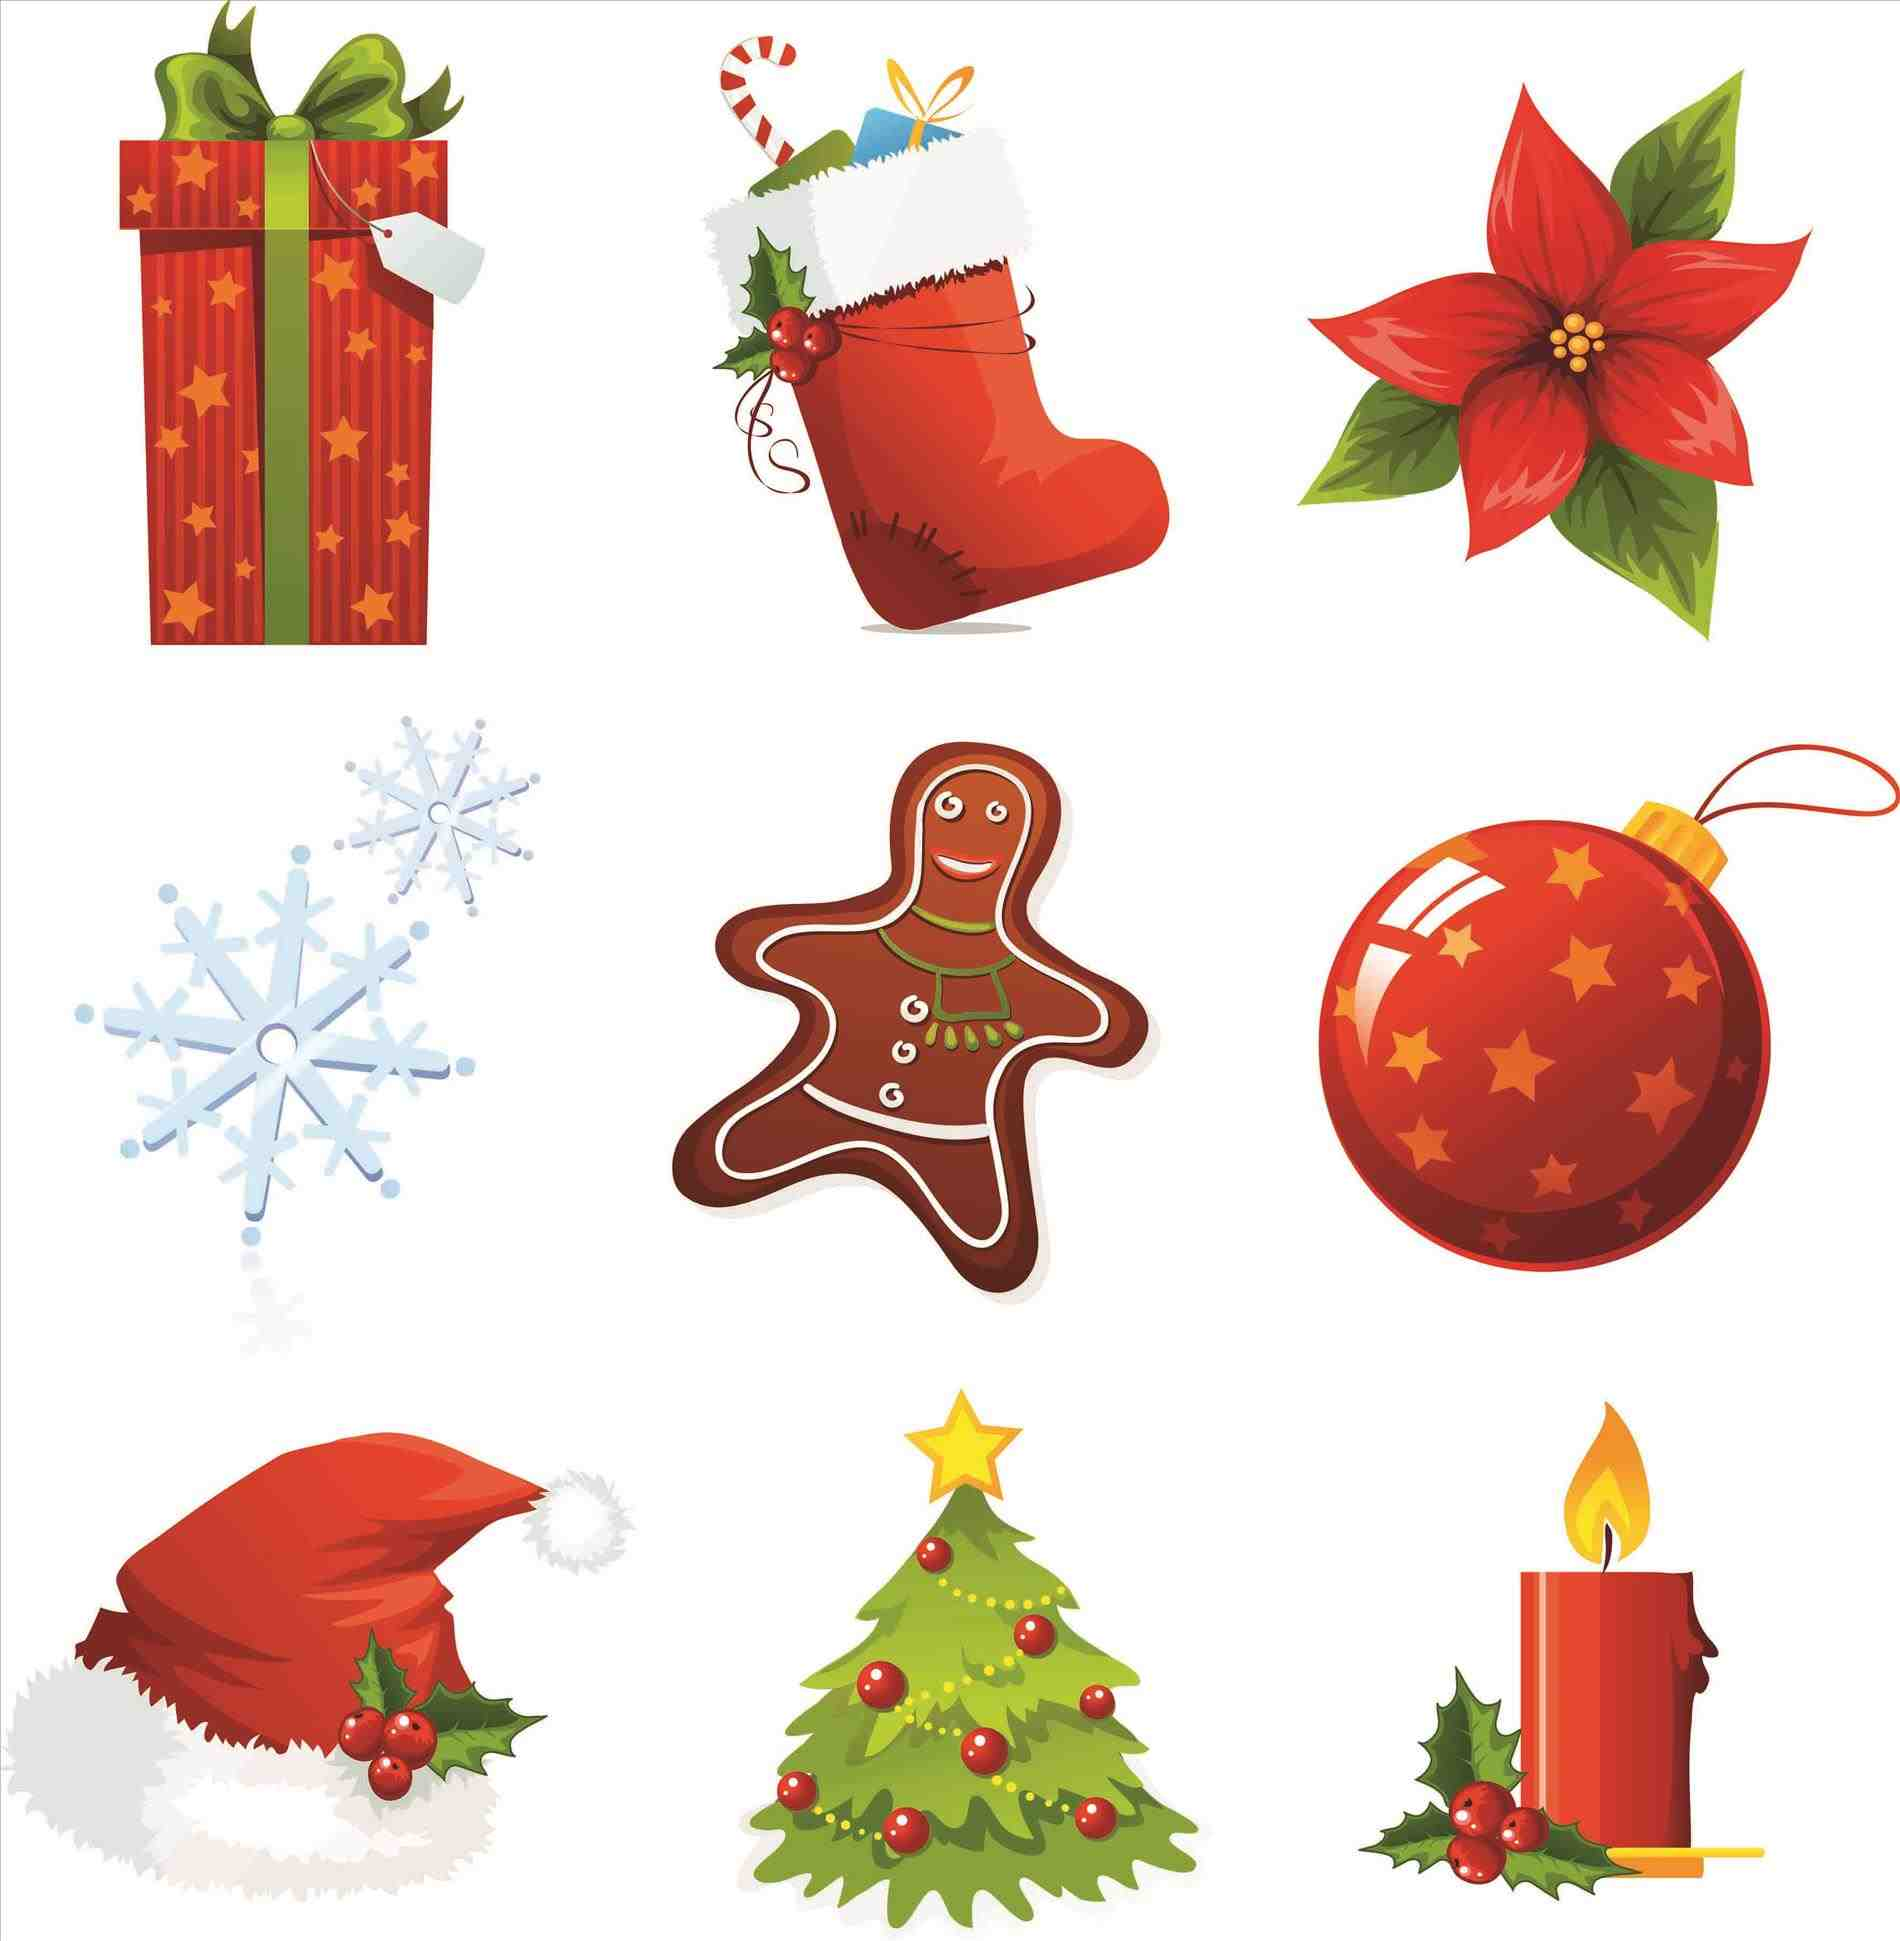 1900x1941 Christmas Ornament Border Clipart Cheminee.website